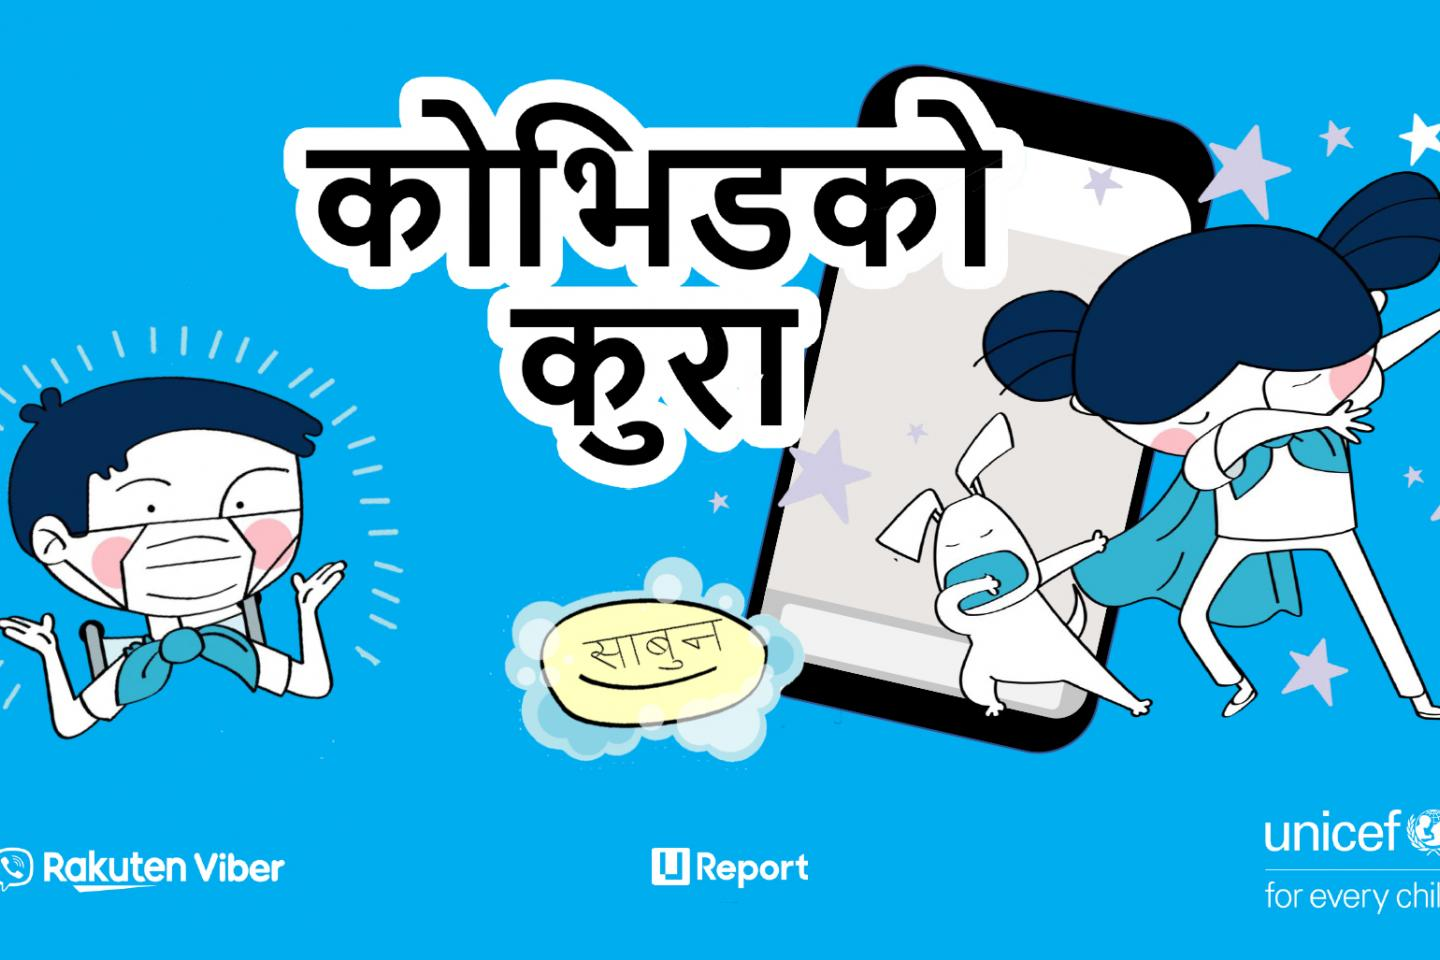 Rakuten Viber and UNICEF Nepal join hands to empower the voices of children and youth in Nepal